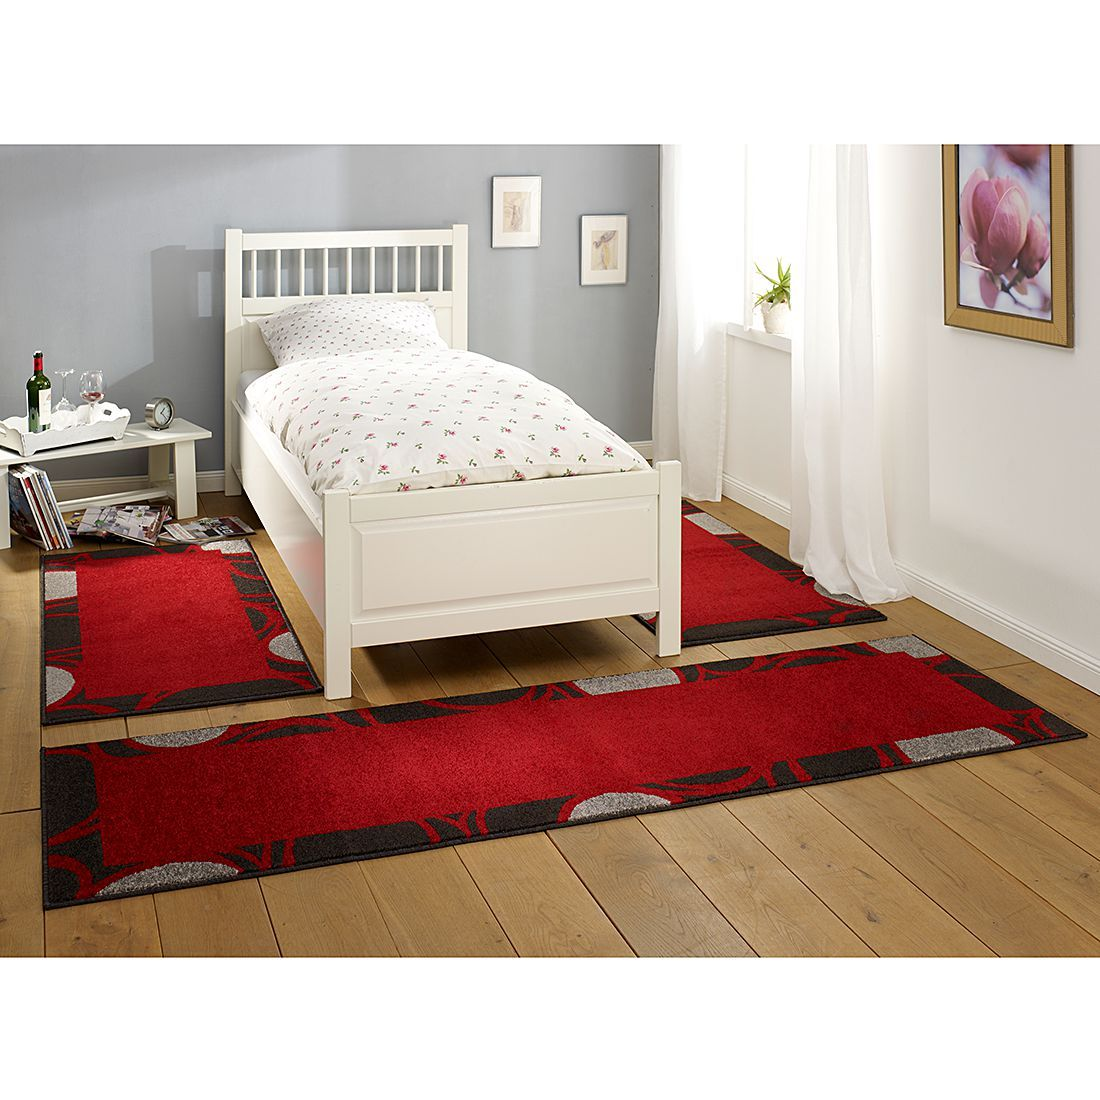 Lit Pas Cher Lit Places Lit Adulte Lit Moderne Design Lit - Lit adulte rouge